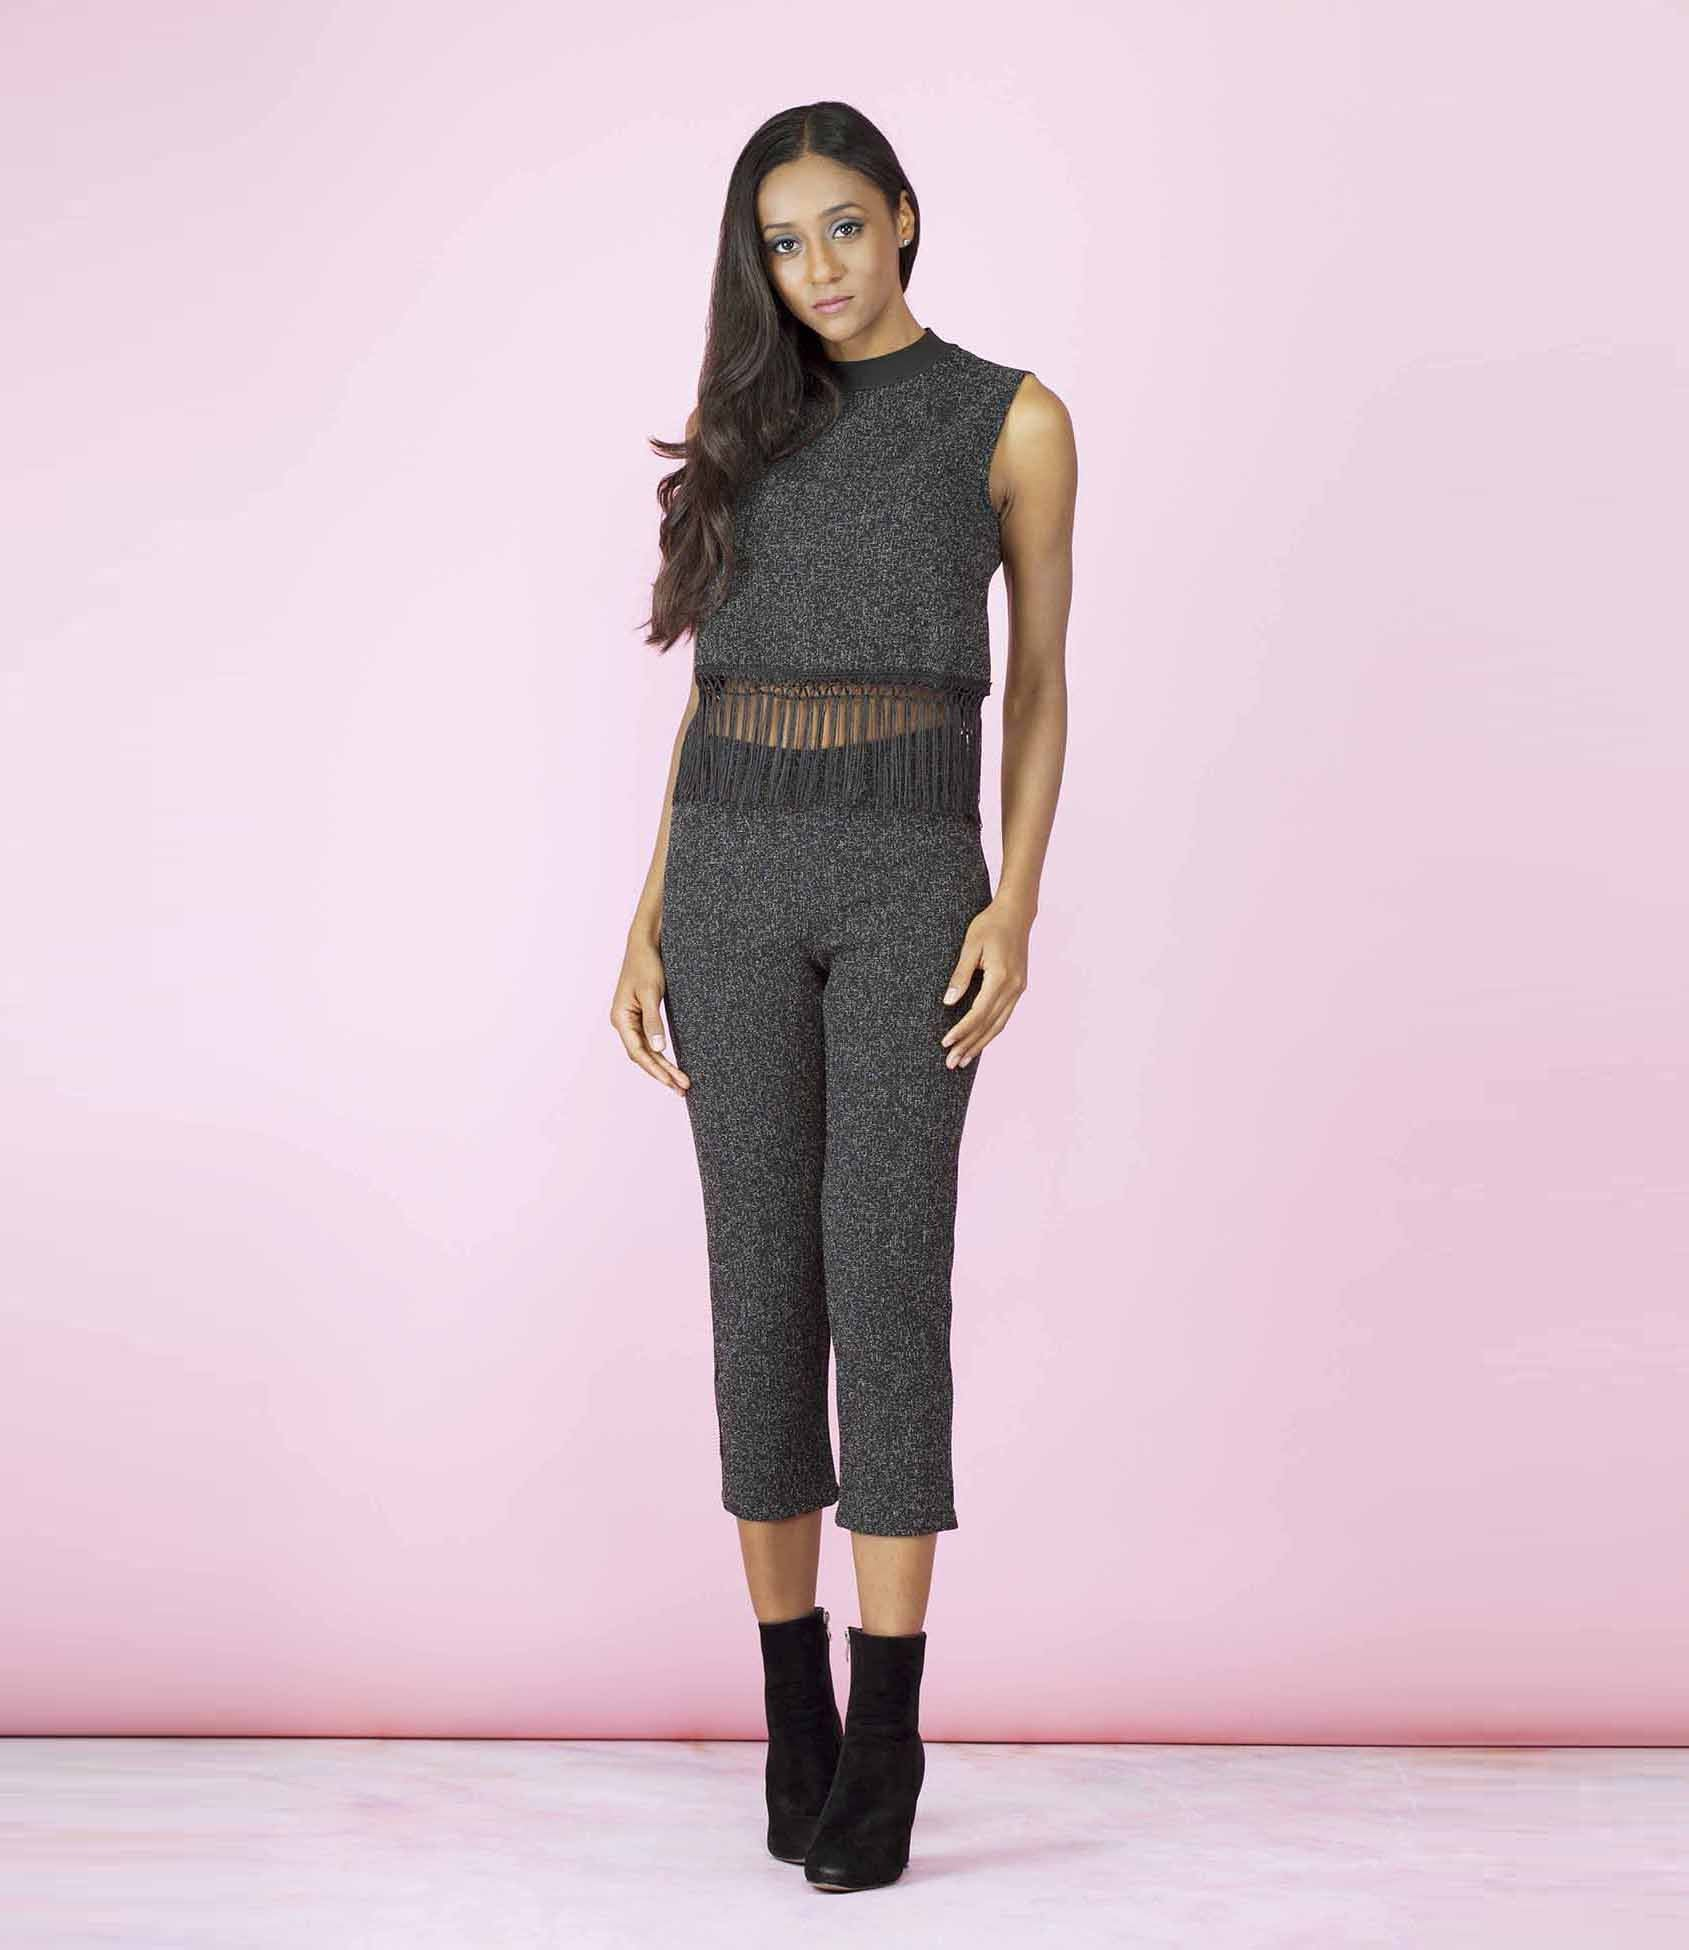 'On Fire' Black Ash Tasseled Two Piece Co-ordinate Trouser Set